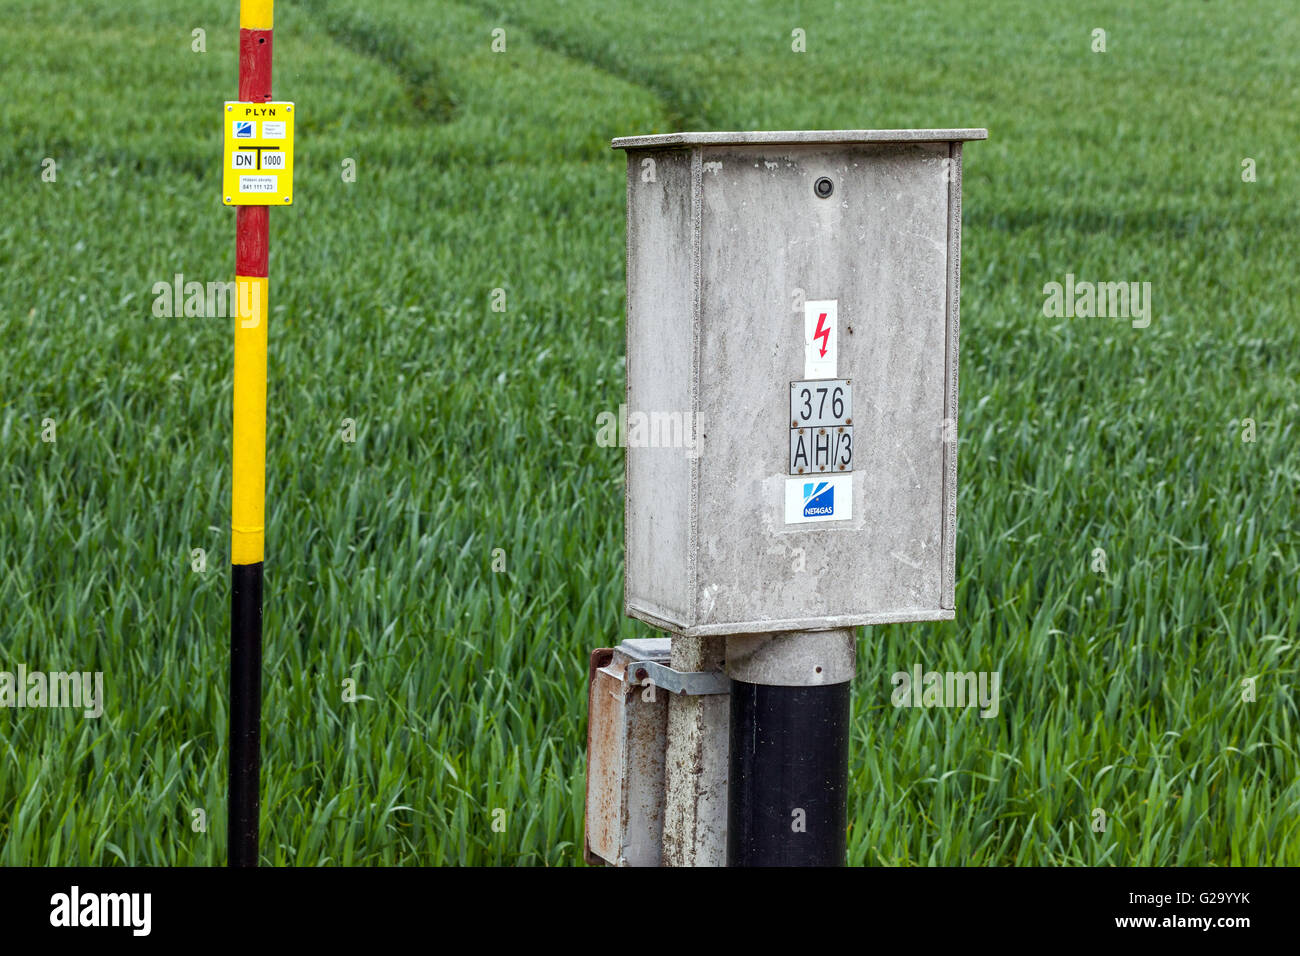 energy and gas distribution in a field with fresh spring grain - Stock Image